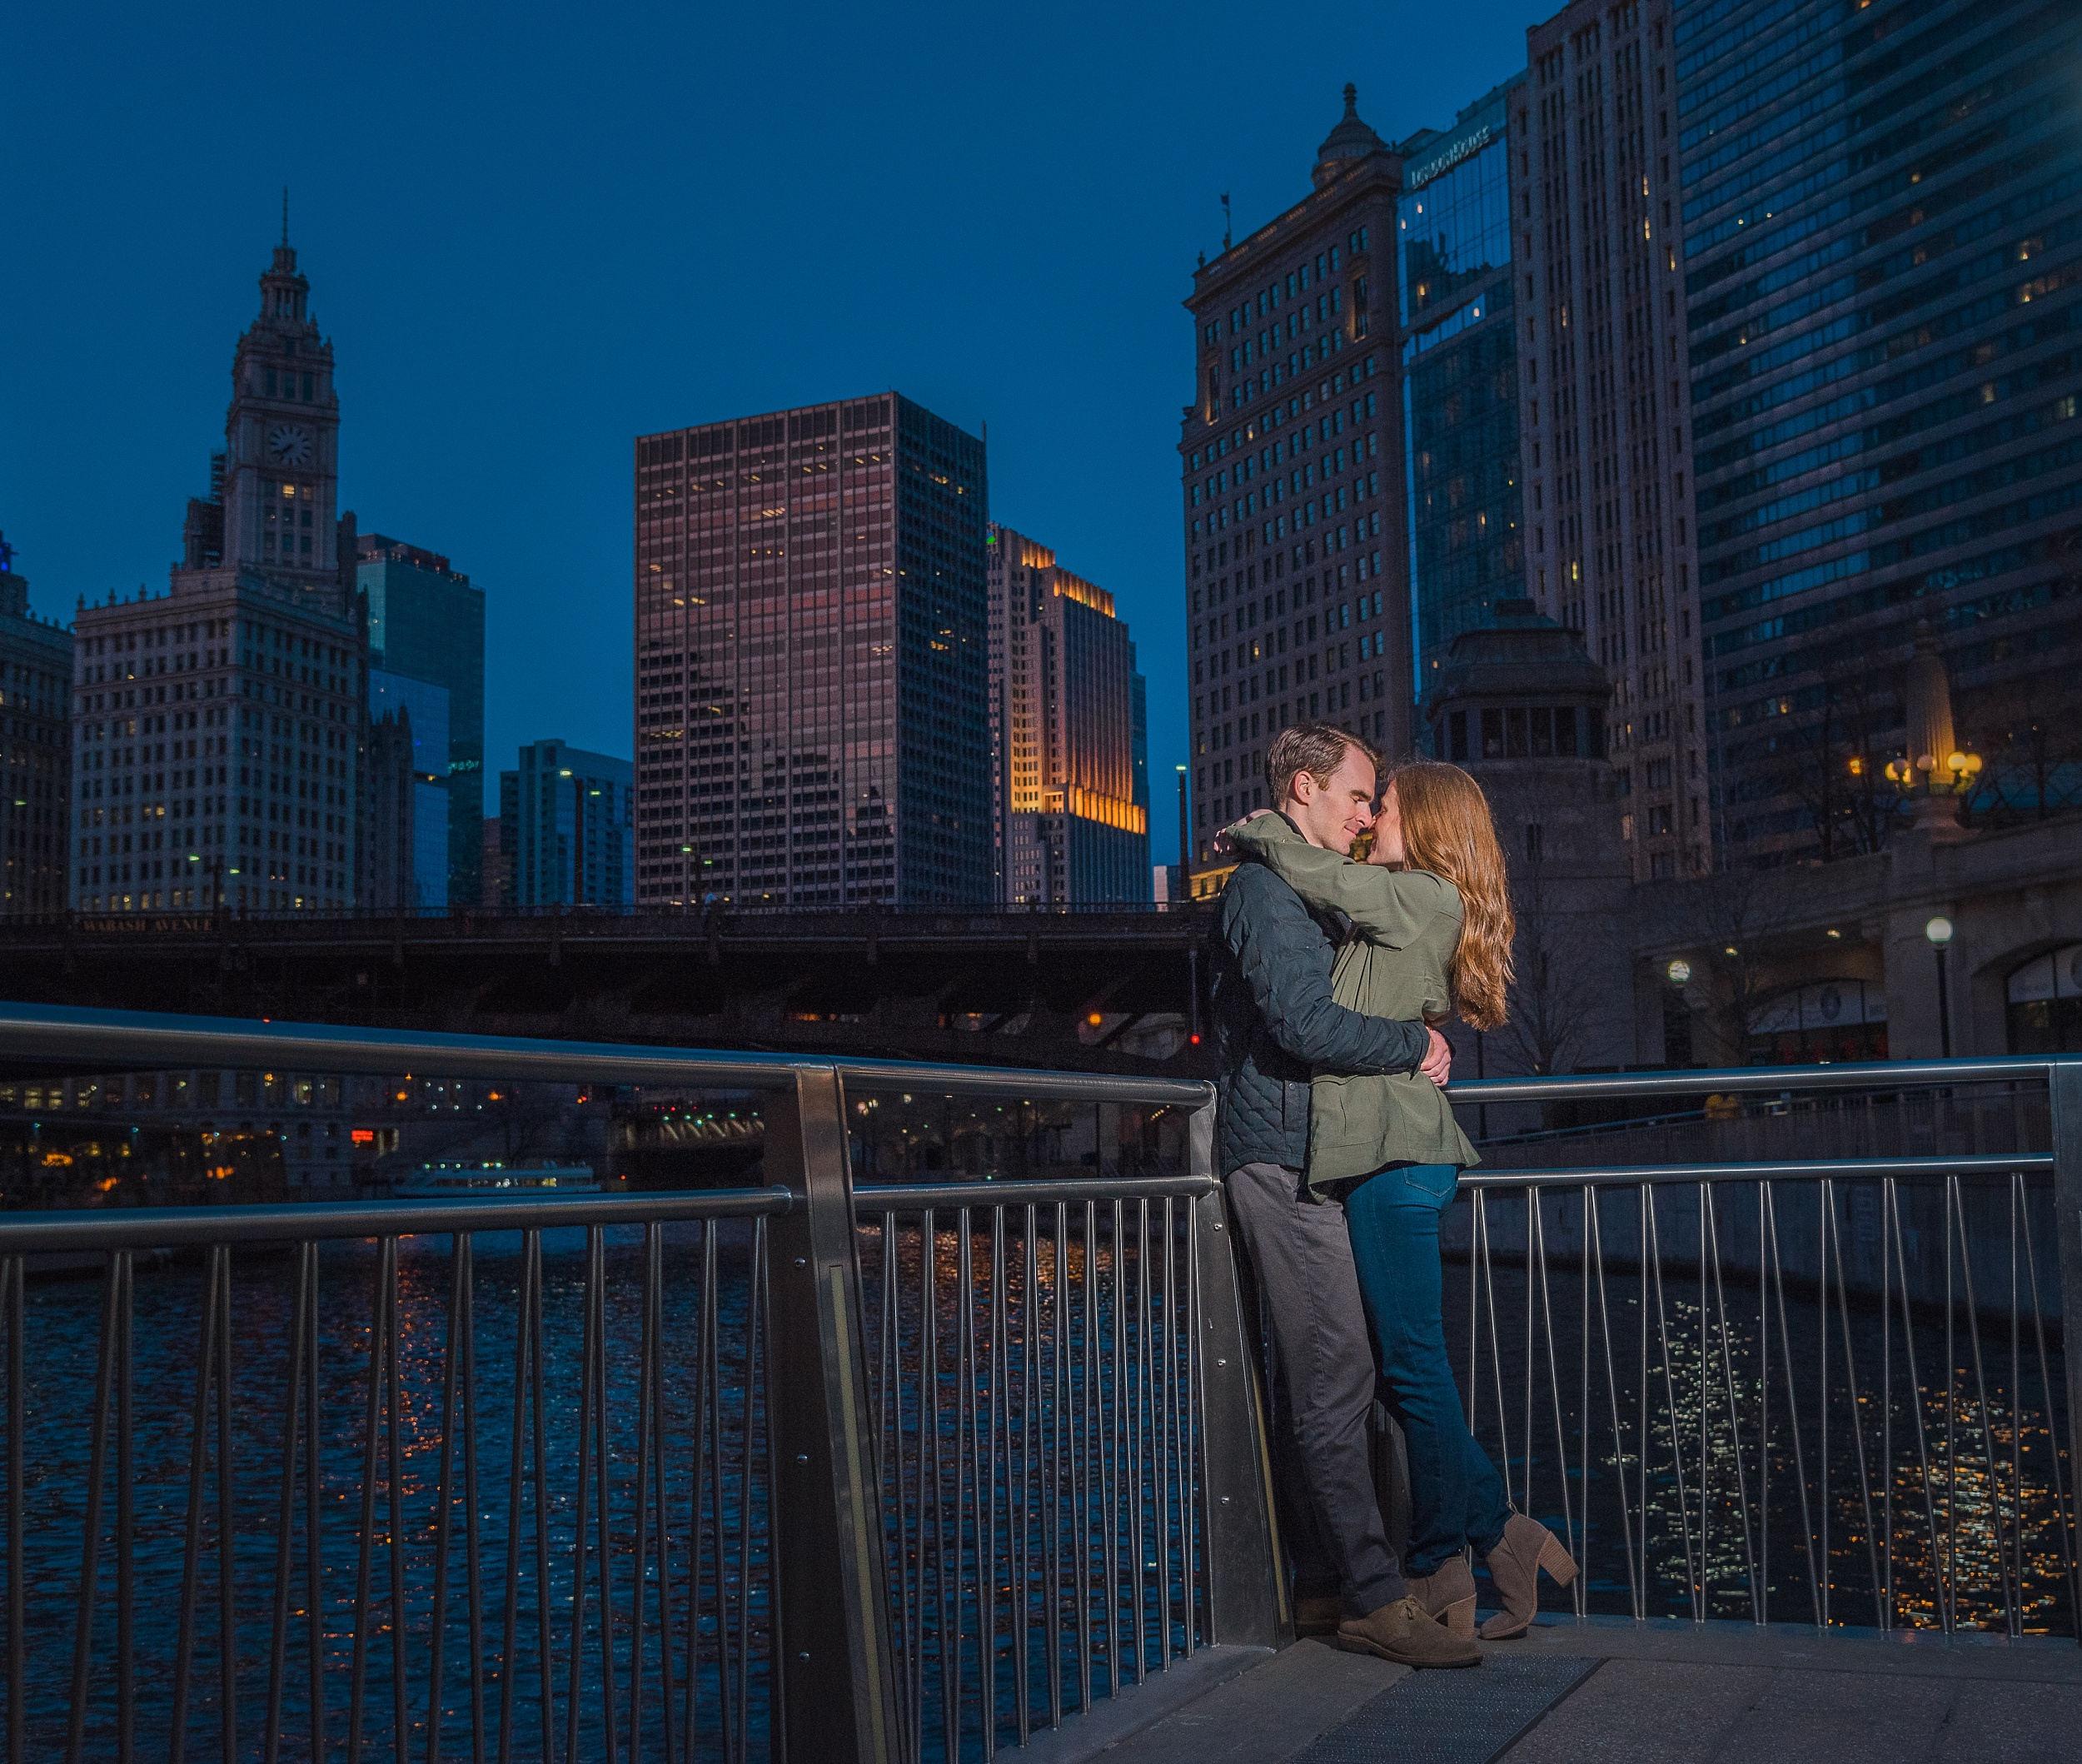 chicago_engagement_wedding_south_bend_wedding_photographer (4).jpg